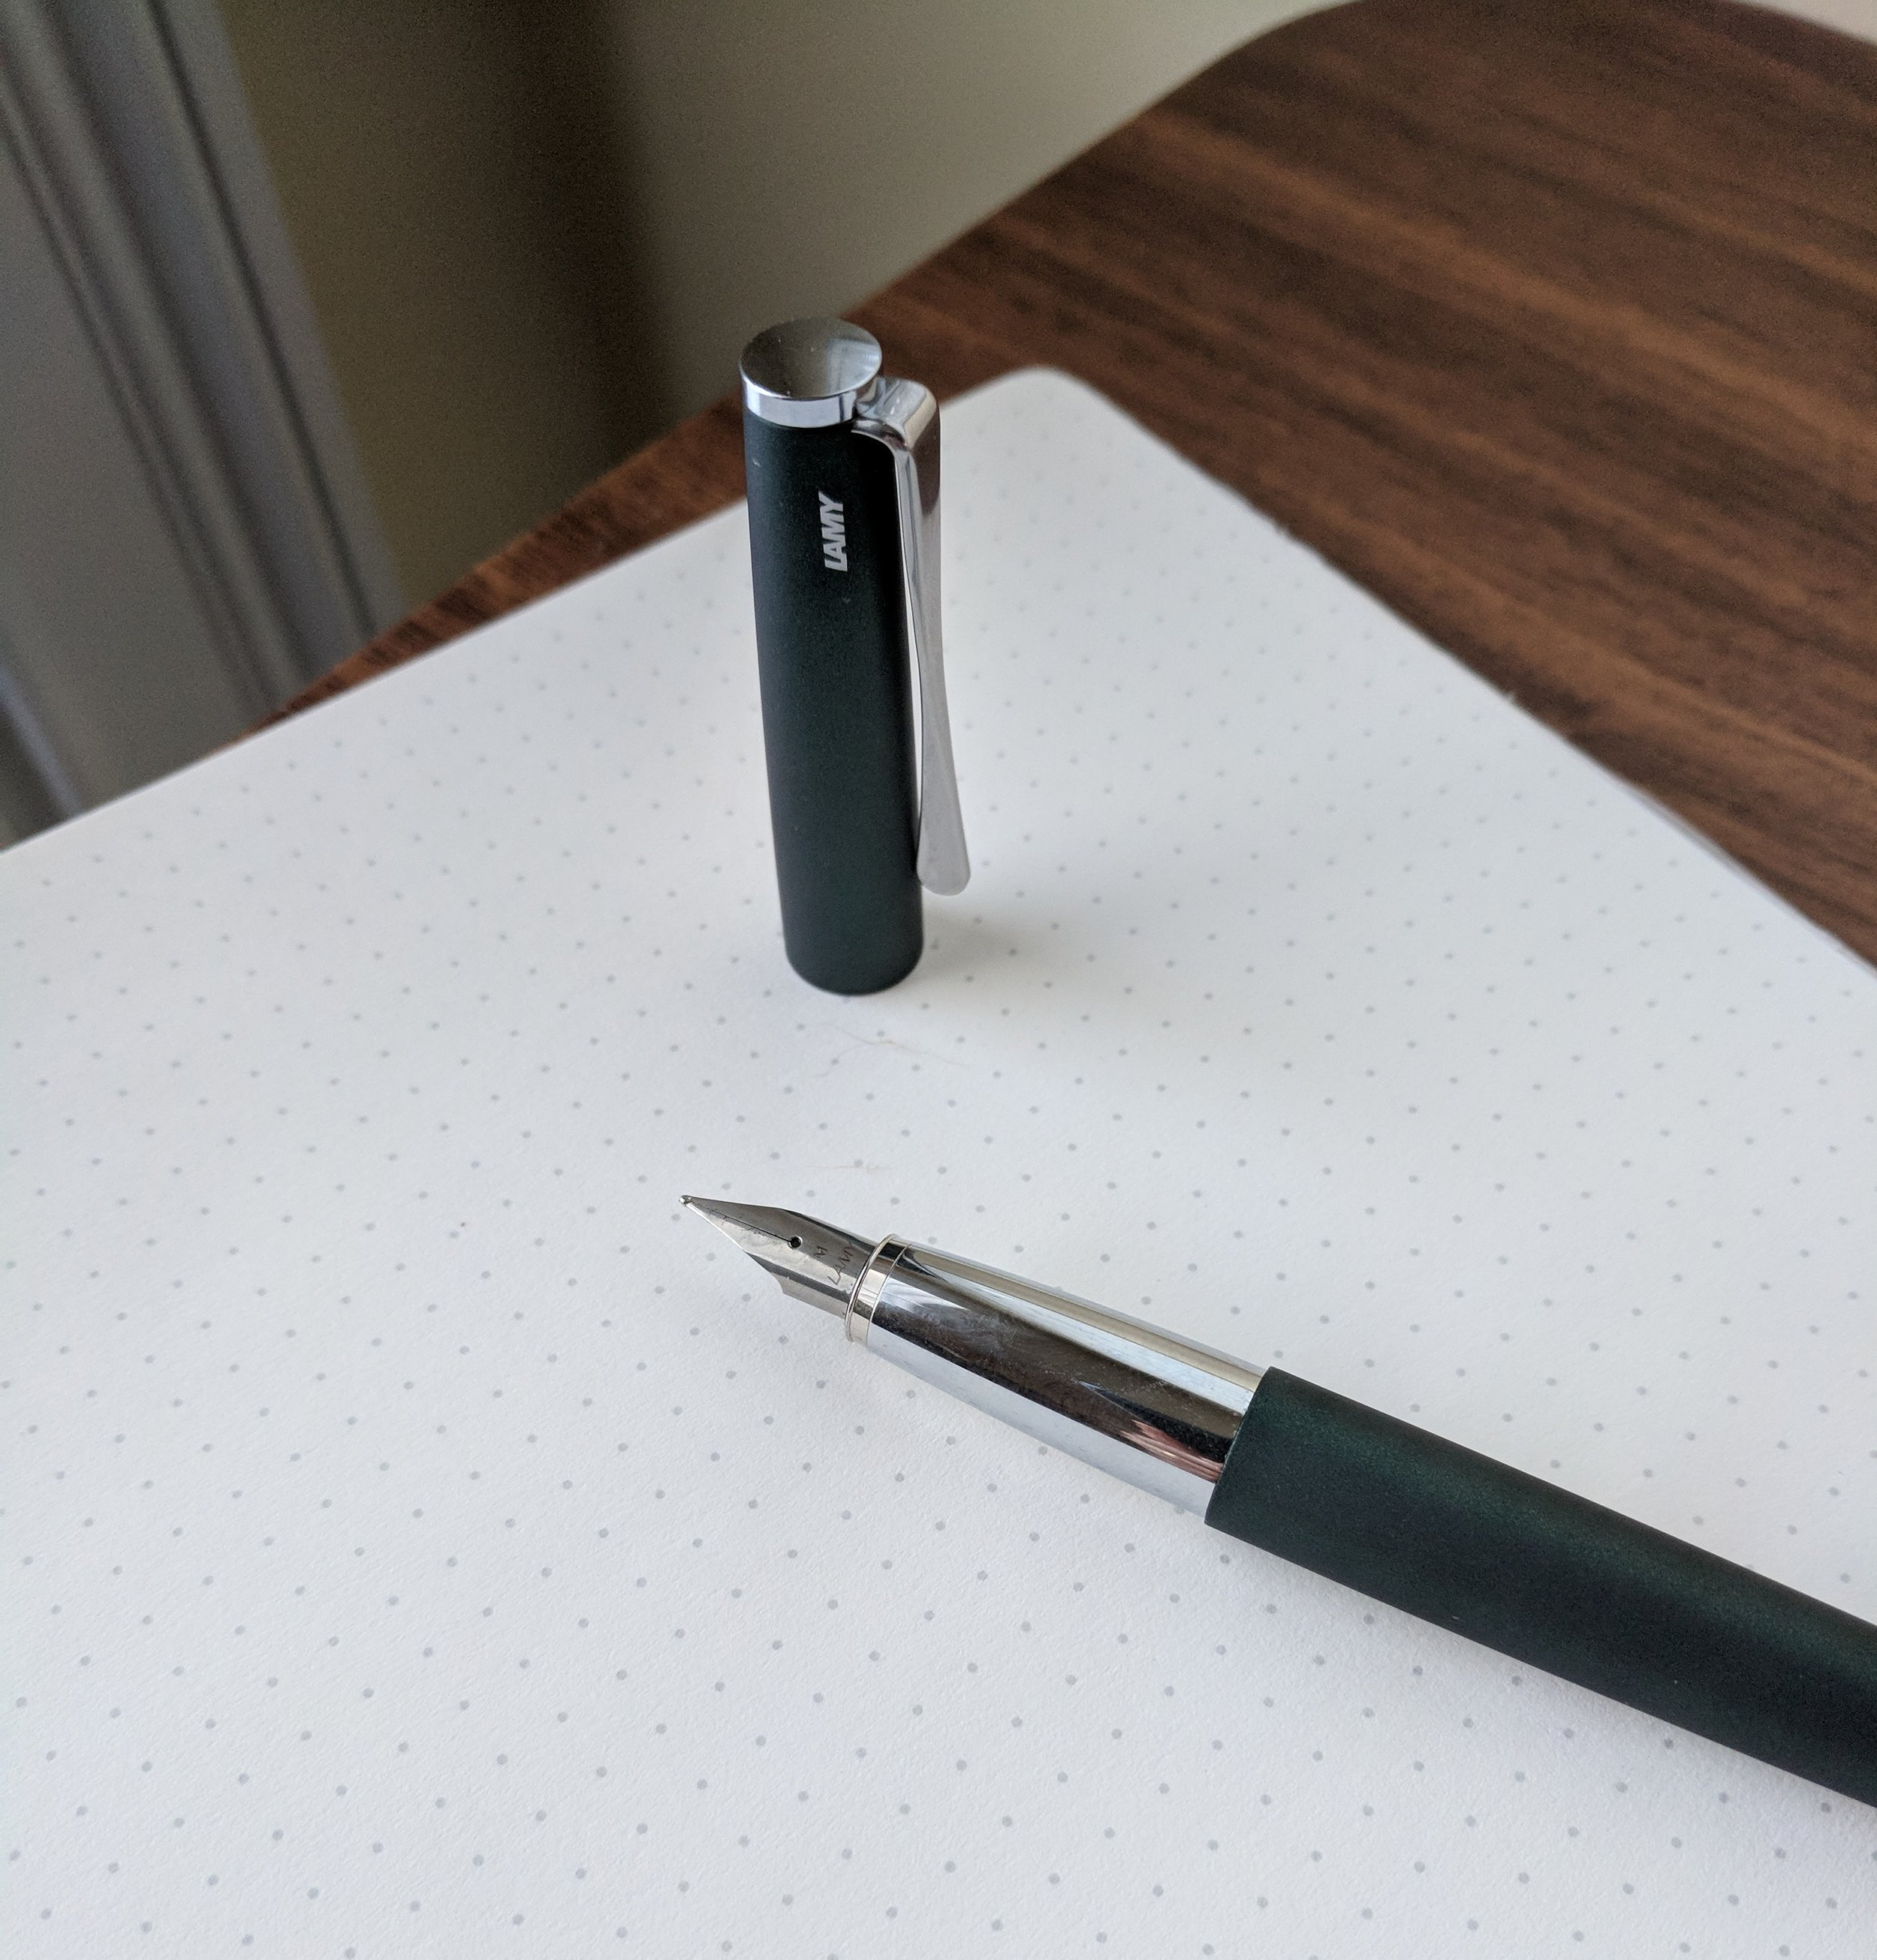 The sub-$80 Lamy Studio features the same stainless steel nib as on the Safari, AL-Star, LX, etc. For another $90,  you can separately purchase one of Lamy's 14kt nibs , which are outstanding, but the price is pretty steep.